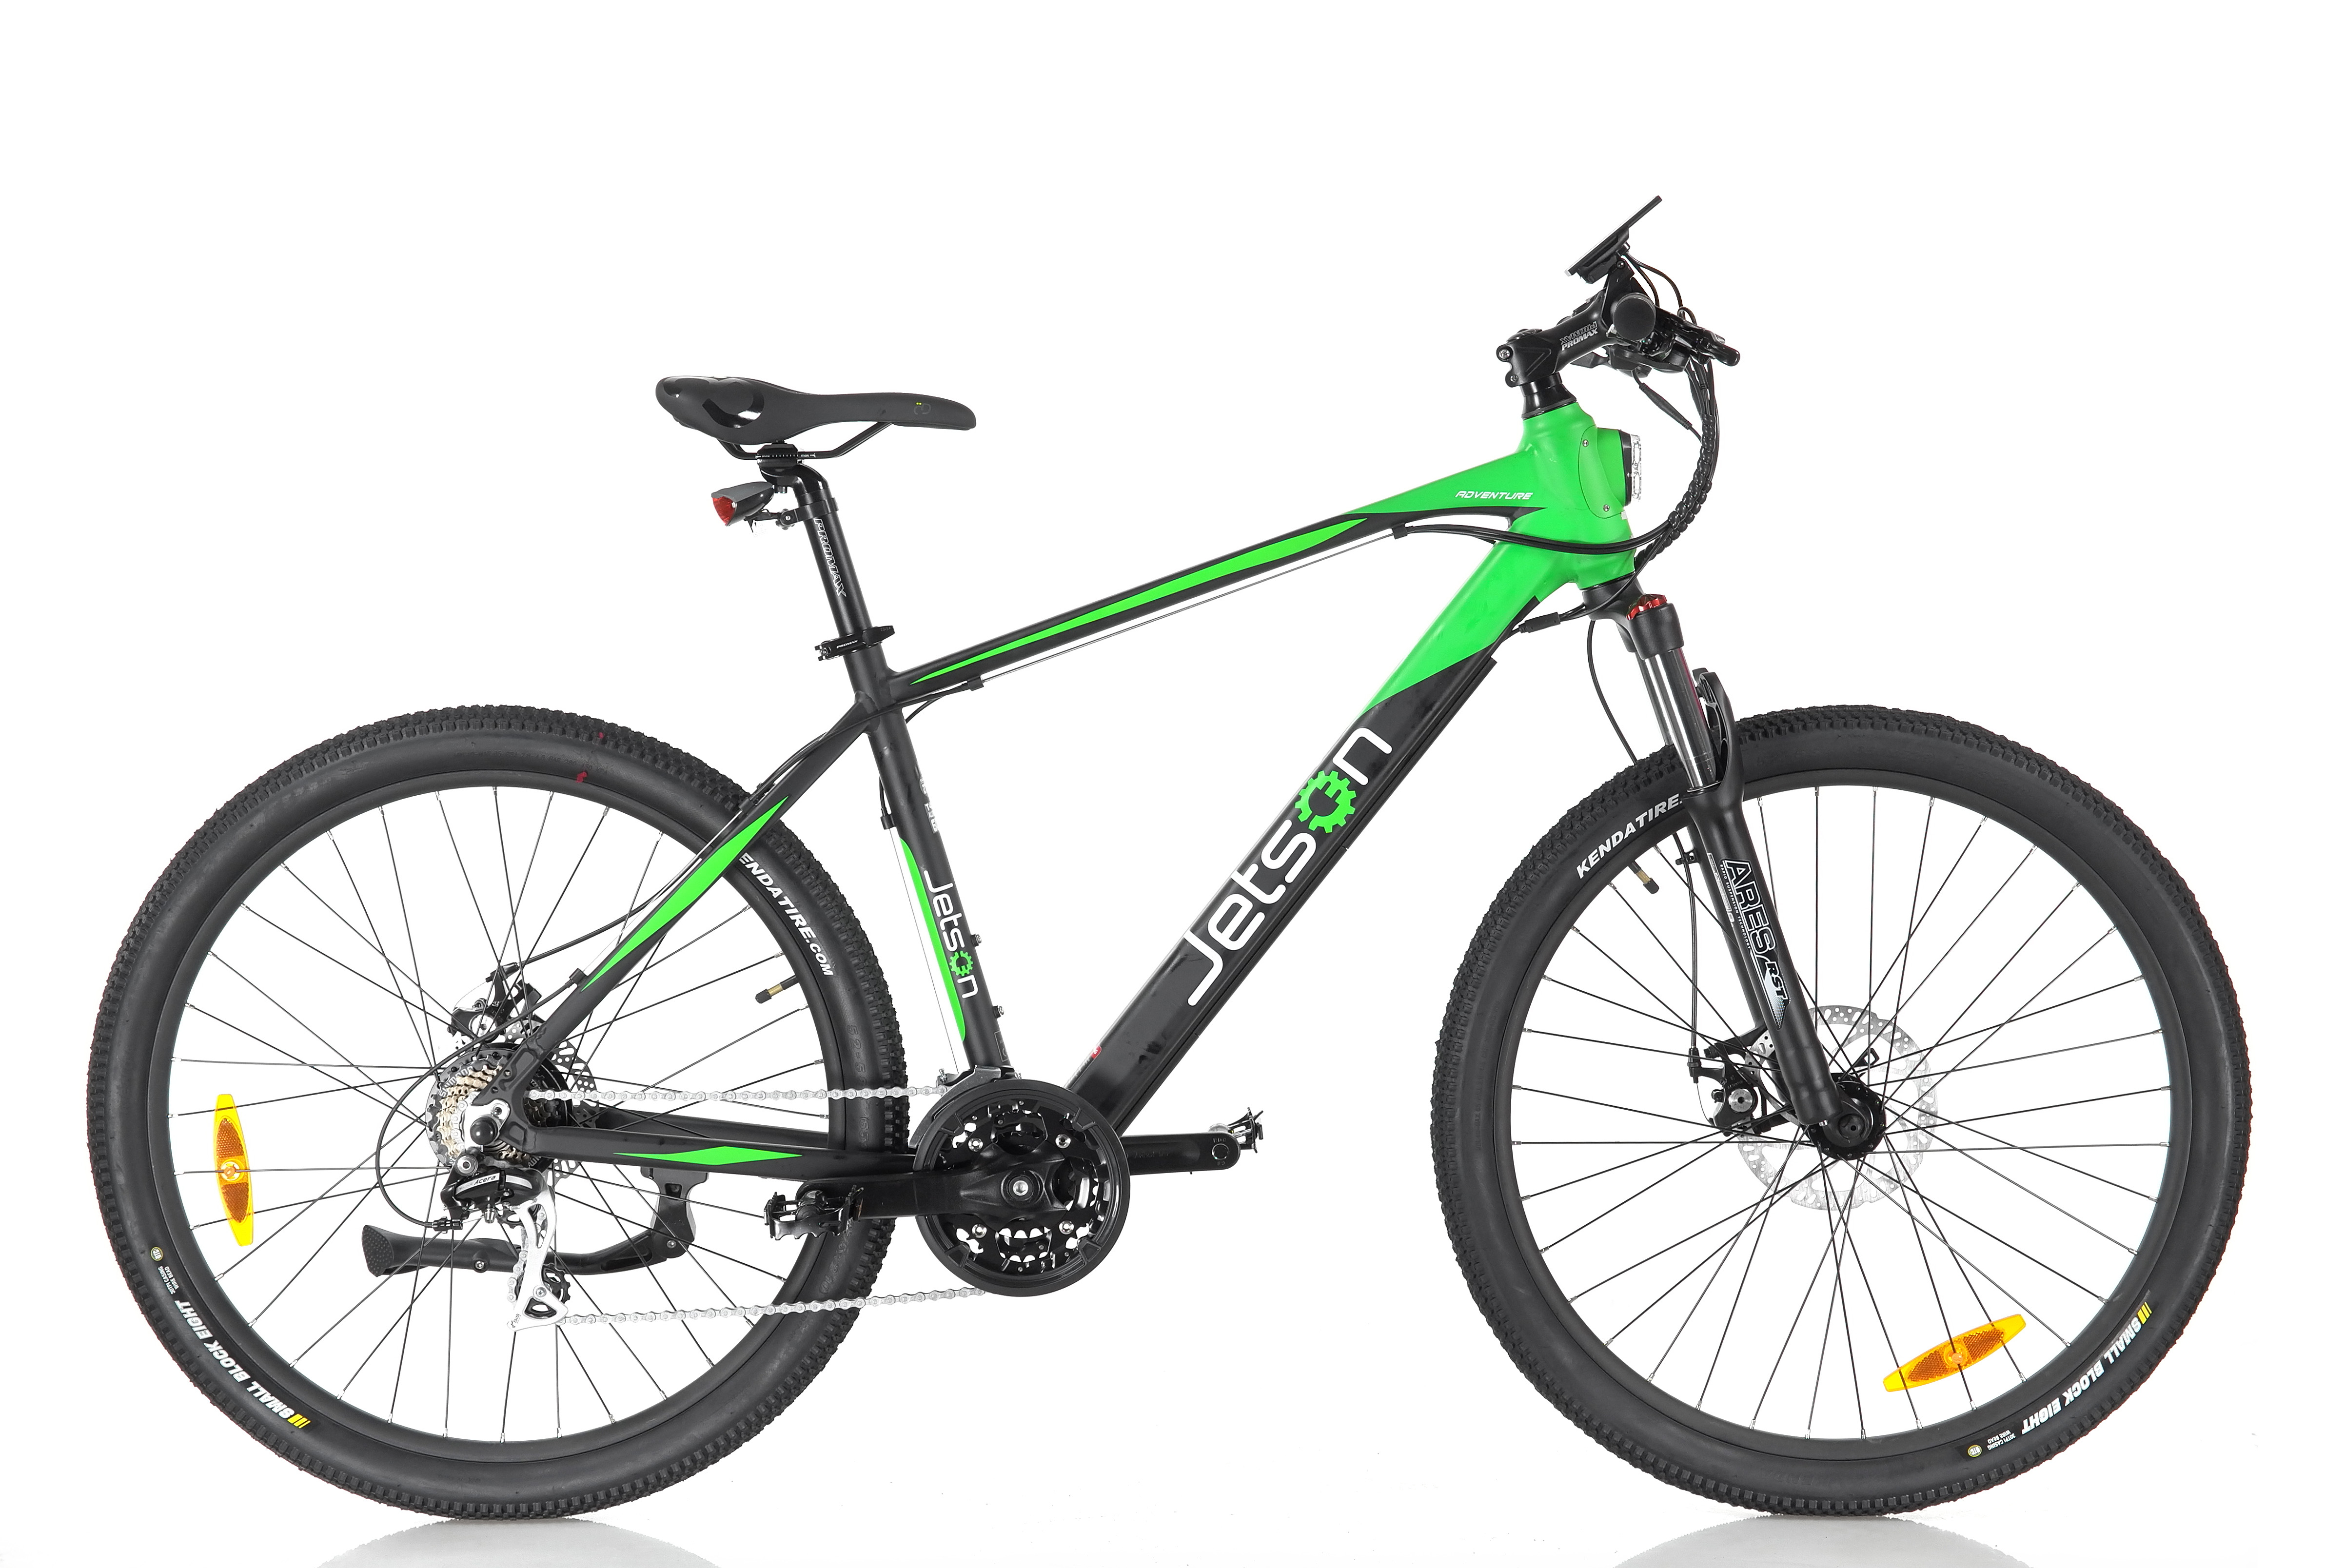 Mars M3 Special Edition Jetson Electric Mountain Bike On Sale